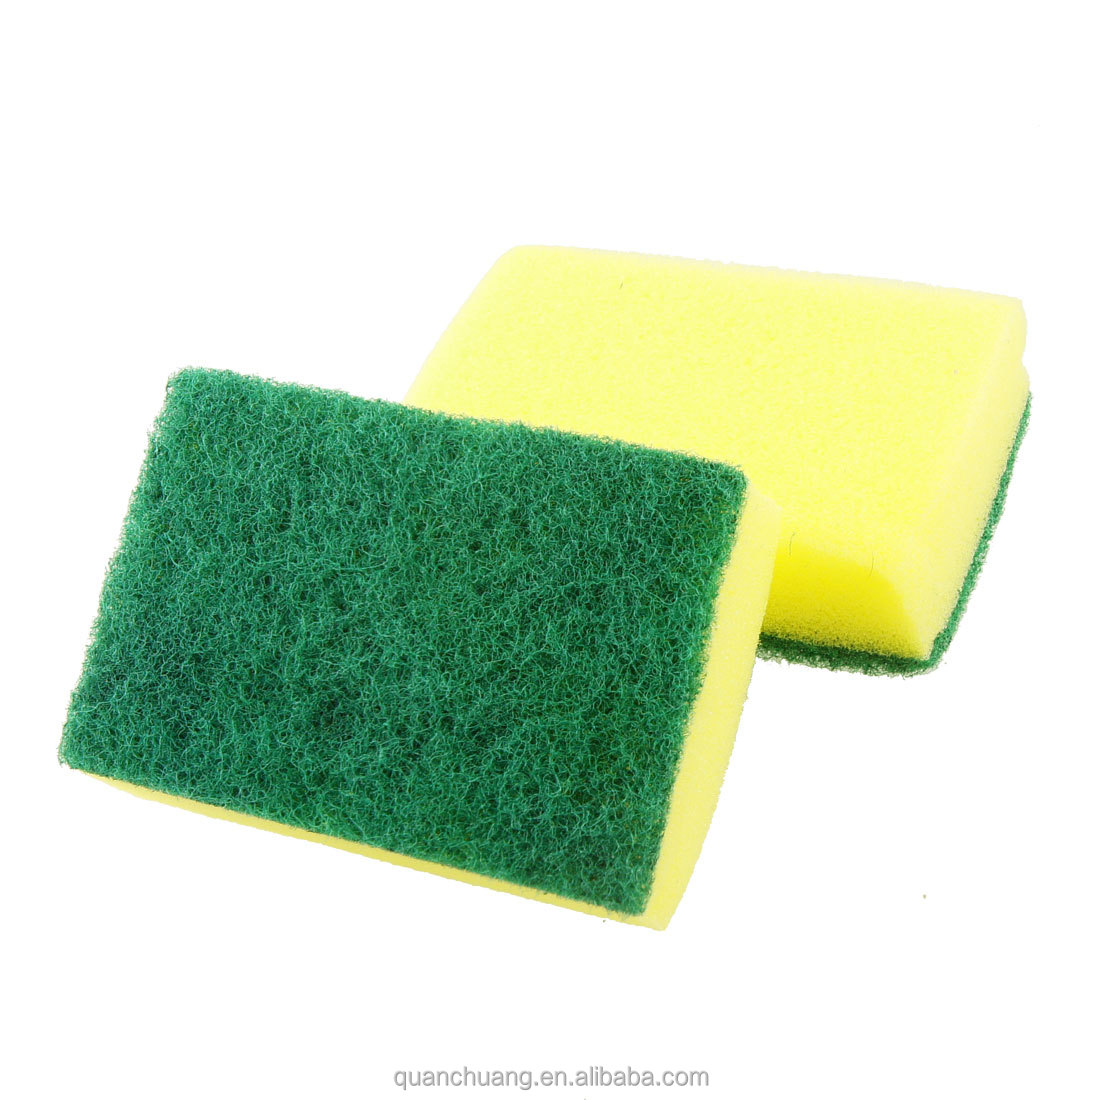 facial/car/bath cleaning cellulose sponge for cleaning job/automobile cleaning sponges